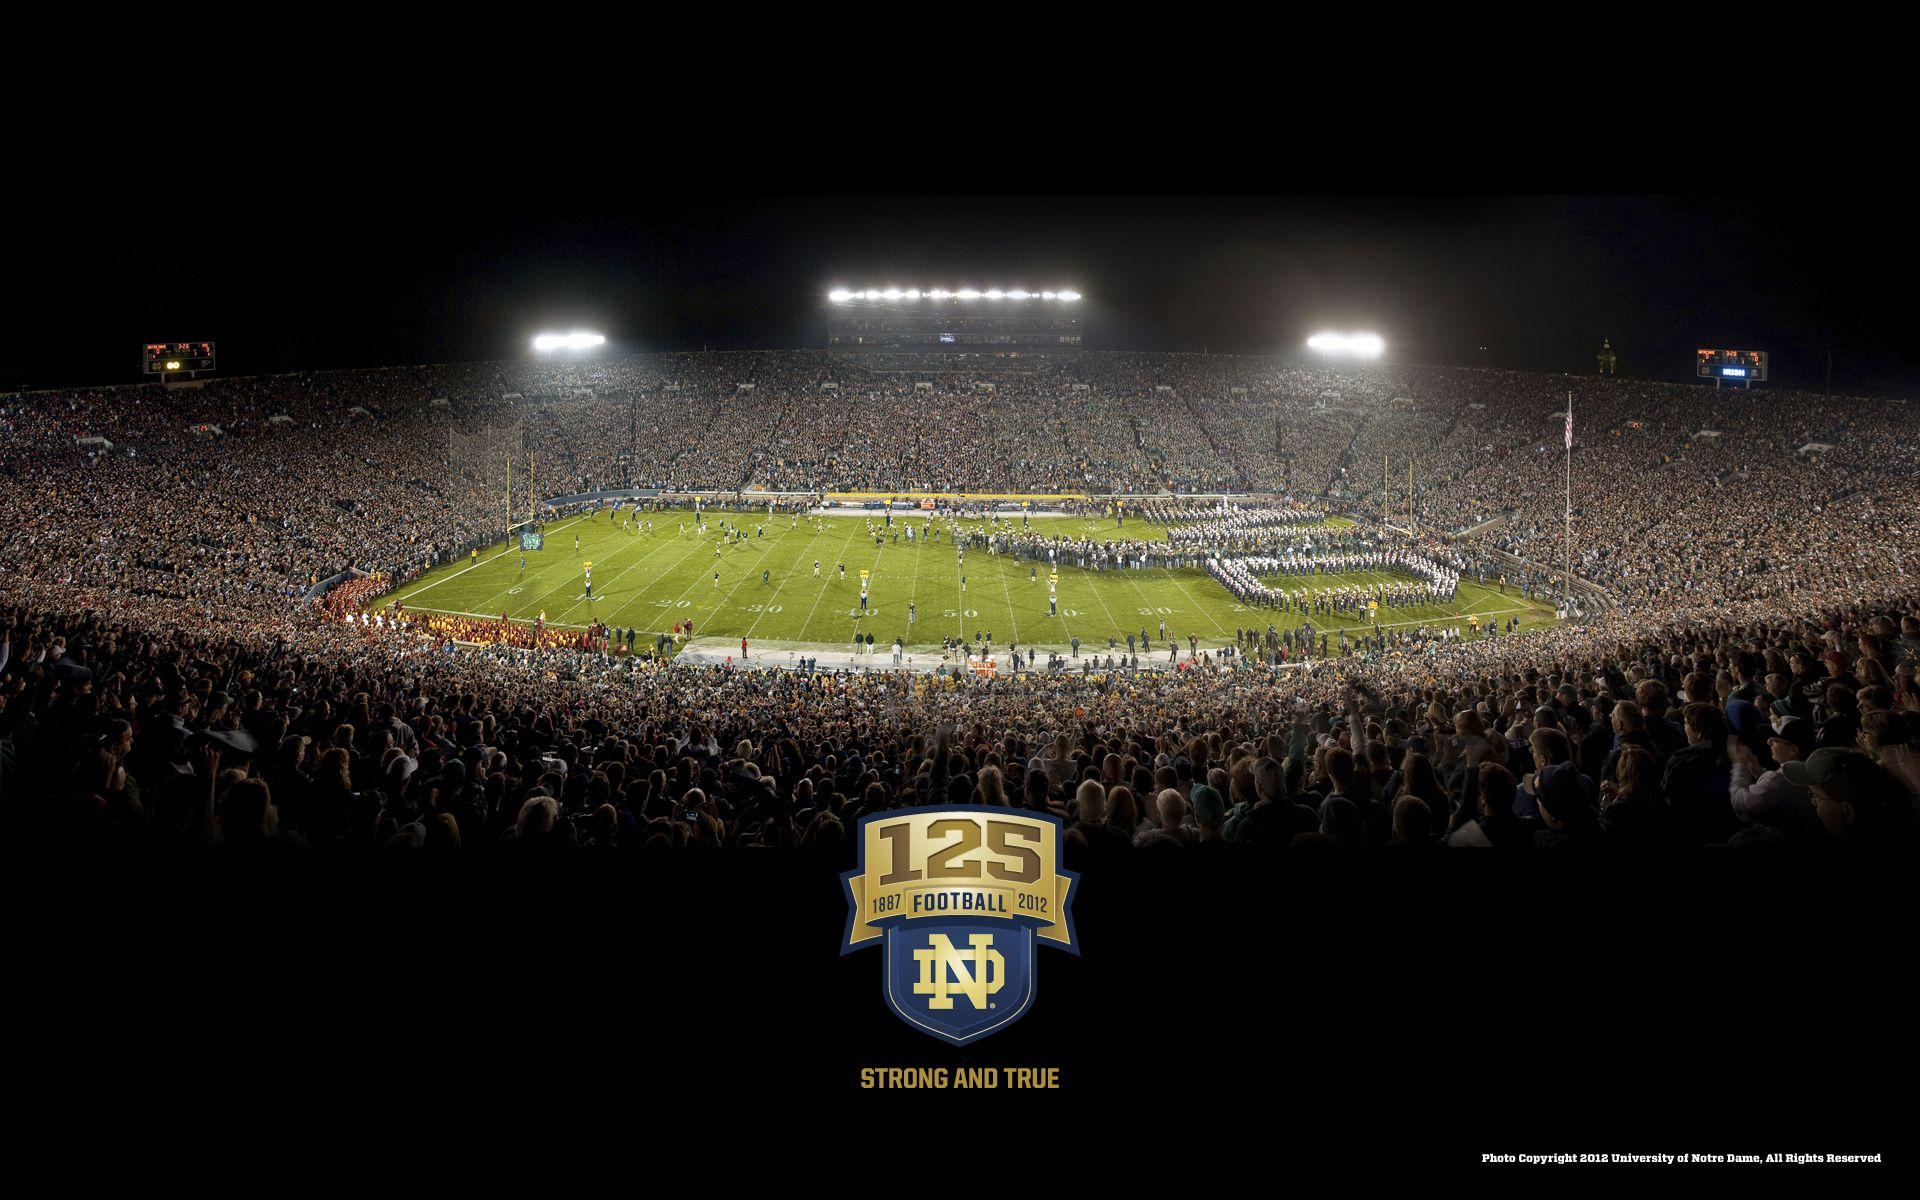 University Of Notre Dame Wallpaper Posted By Ethan Johnson